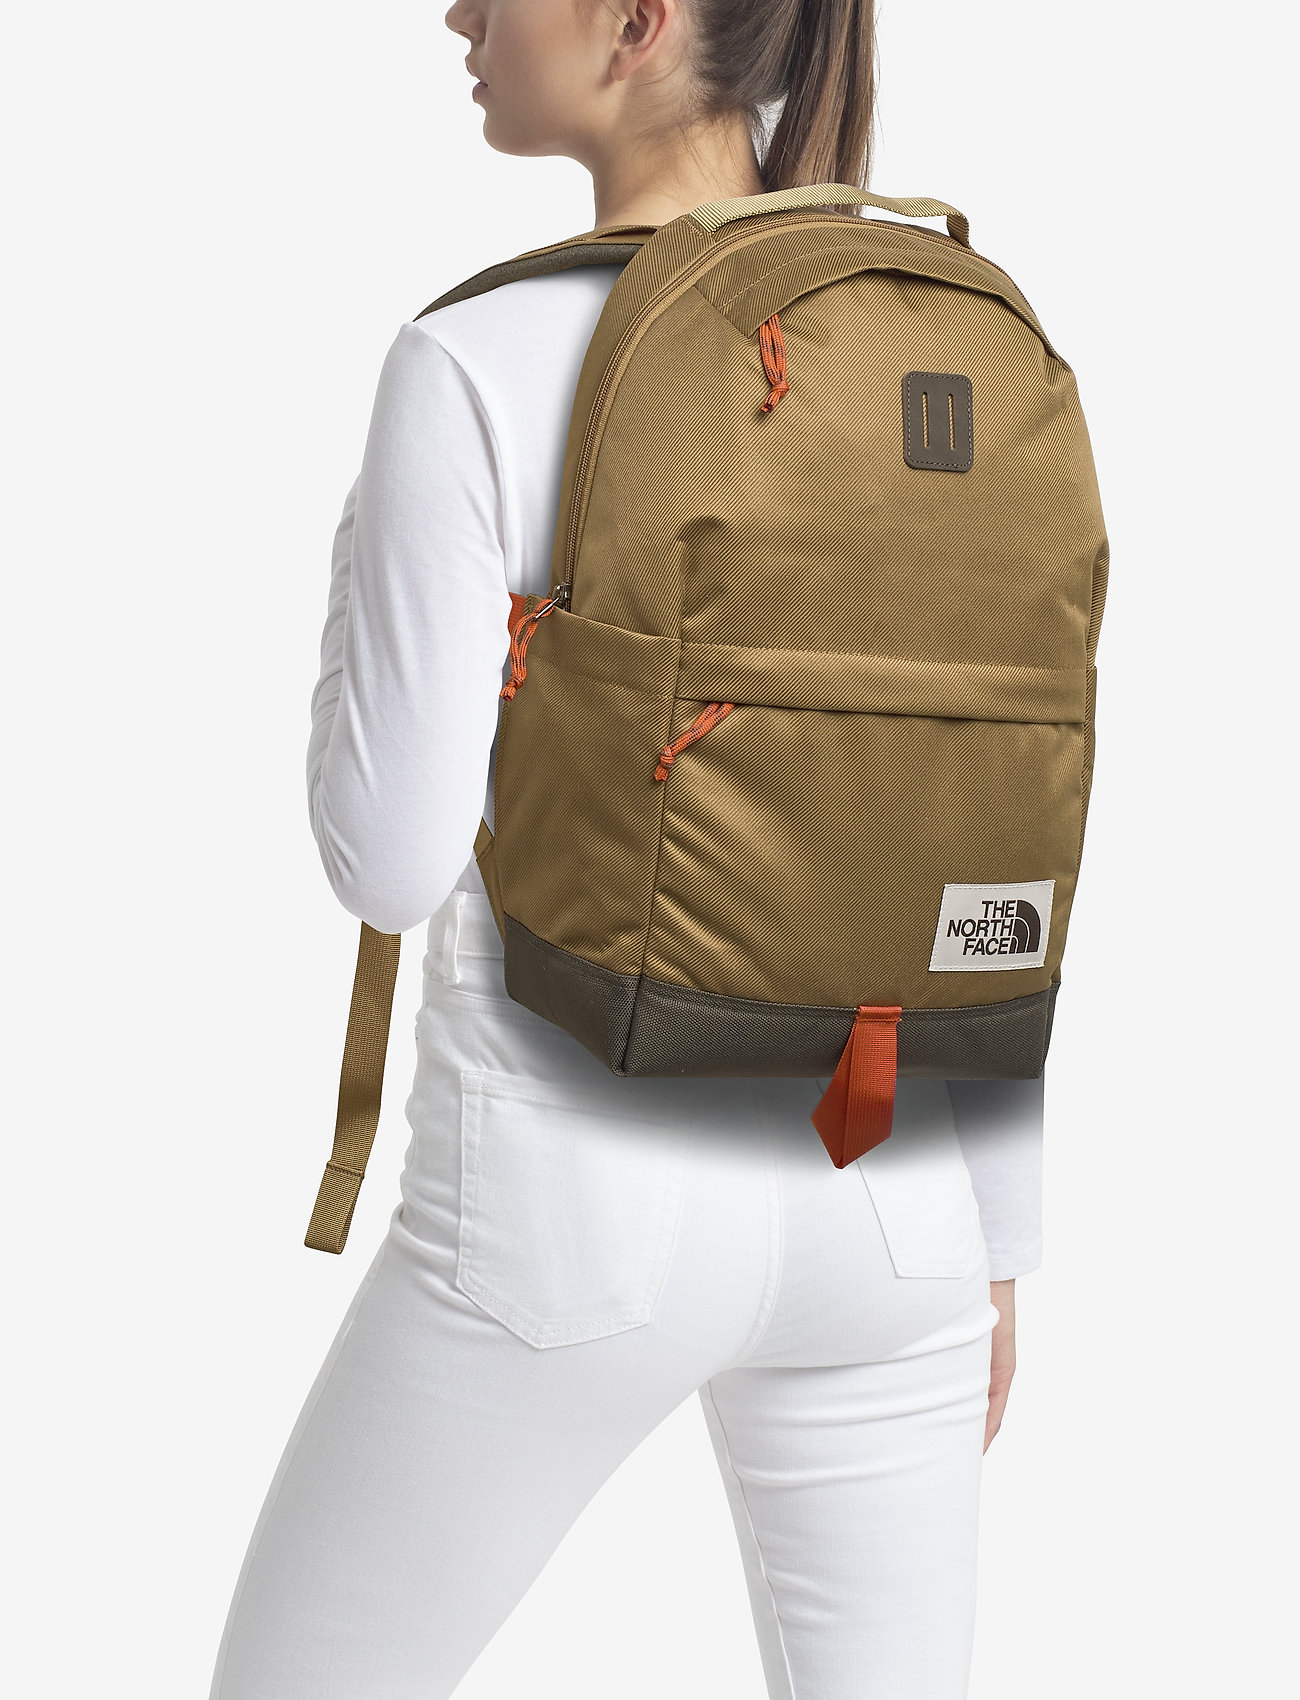 The North Face DAYPACK - BRITISHKHAKI/NWTAUPEGREEN